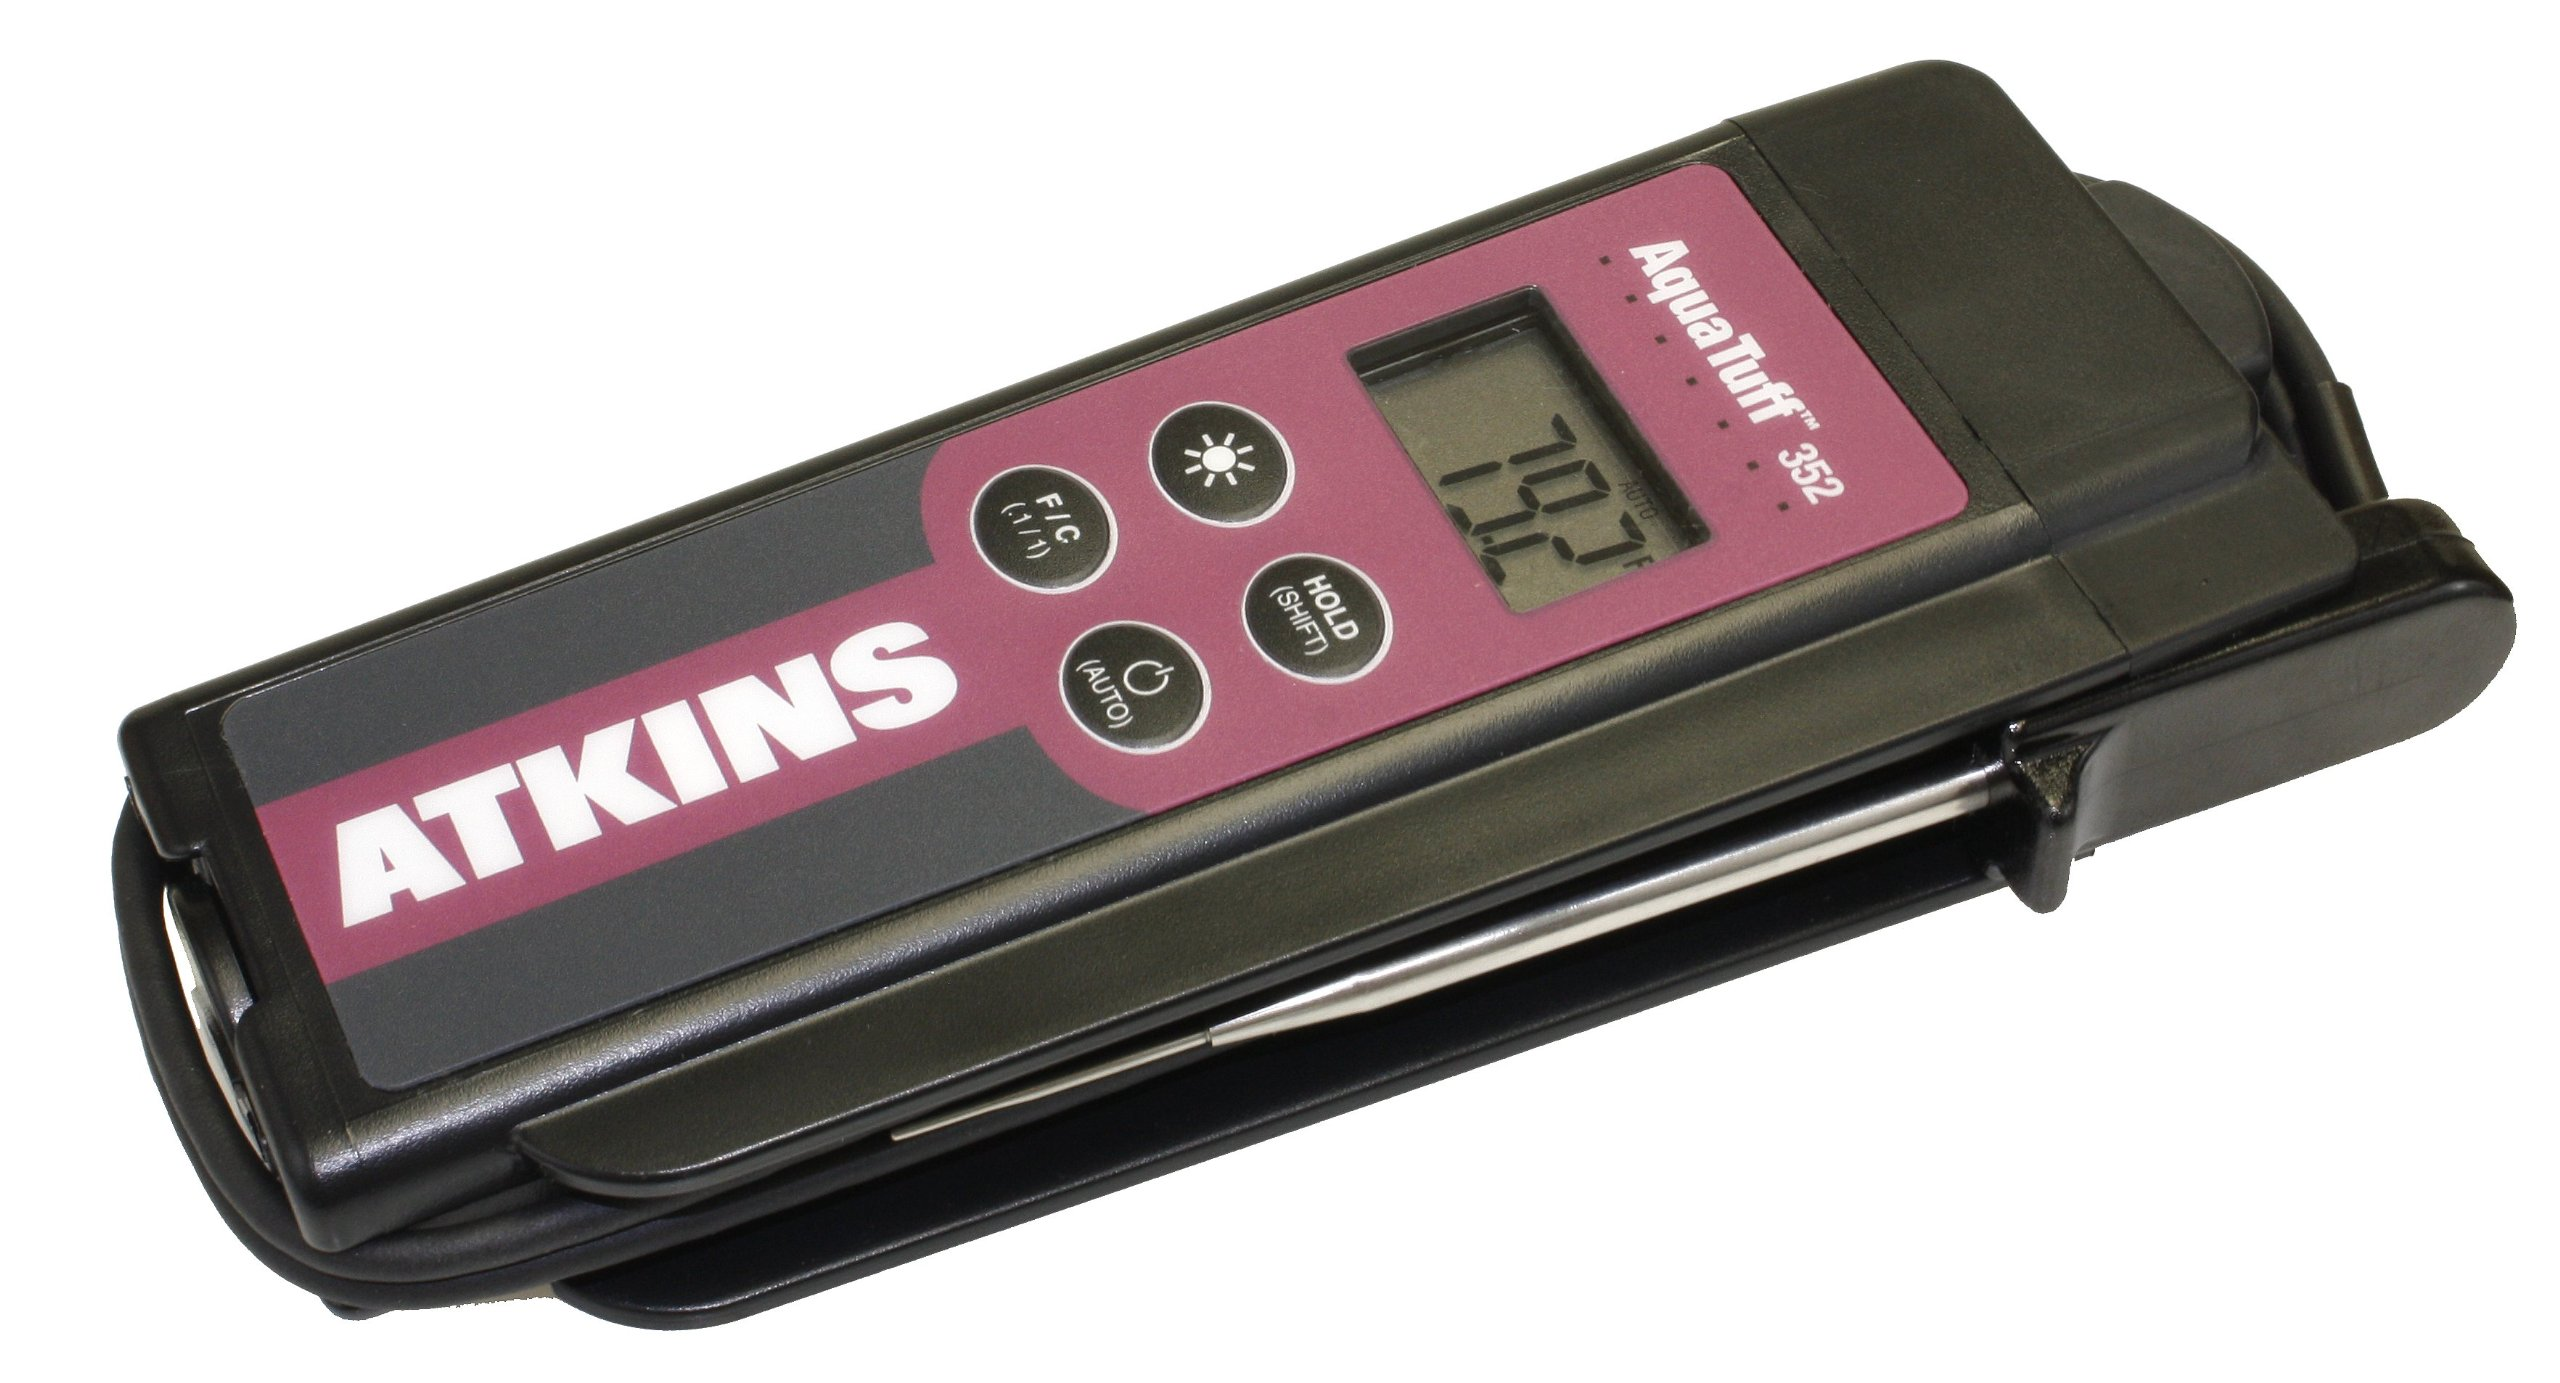 Cooper-Atkins 35240 Series 352 AquaTuff Wrap&Stow Waterproof Thermocouple Instruments with MicroNeedle Probe, -100 to +500 degrees F Temperature Range by Cooper